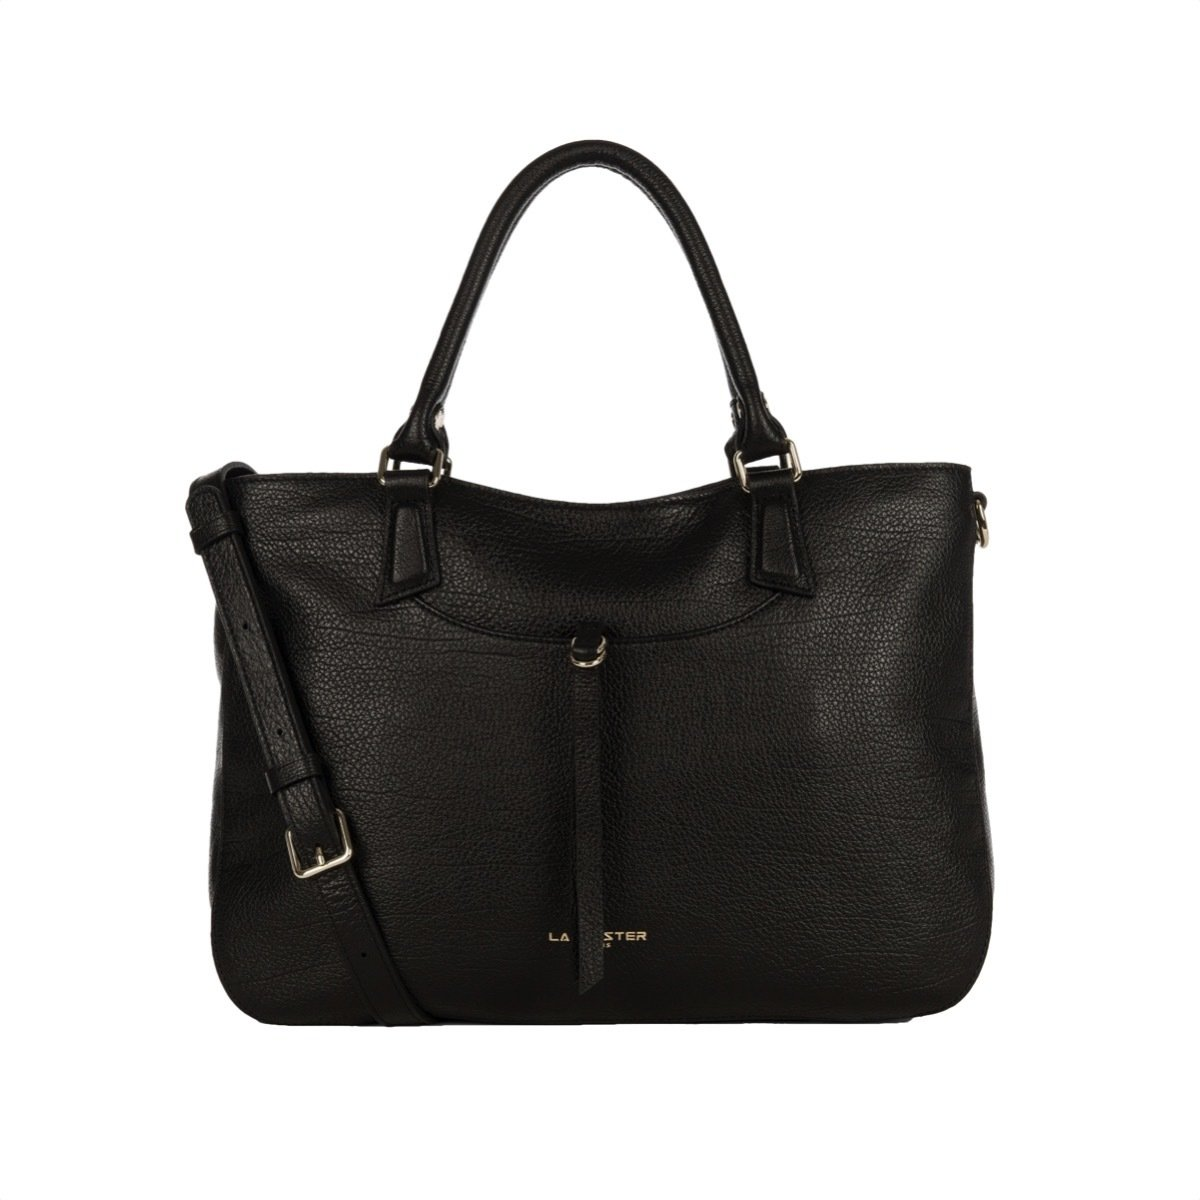 LANCASTER - Large Handle Bag - Noir